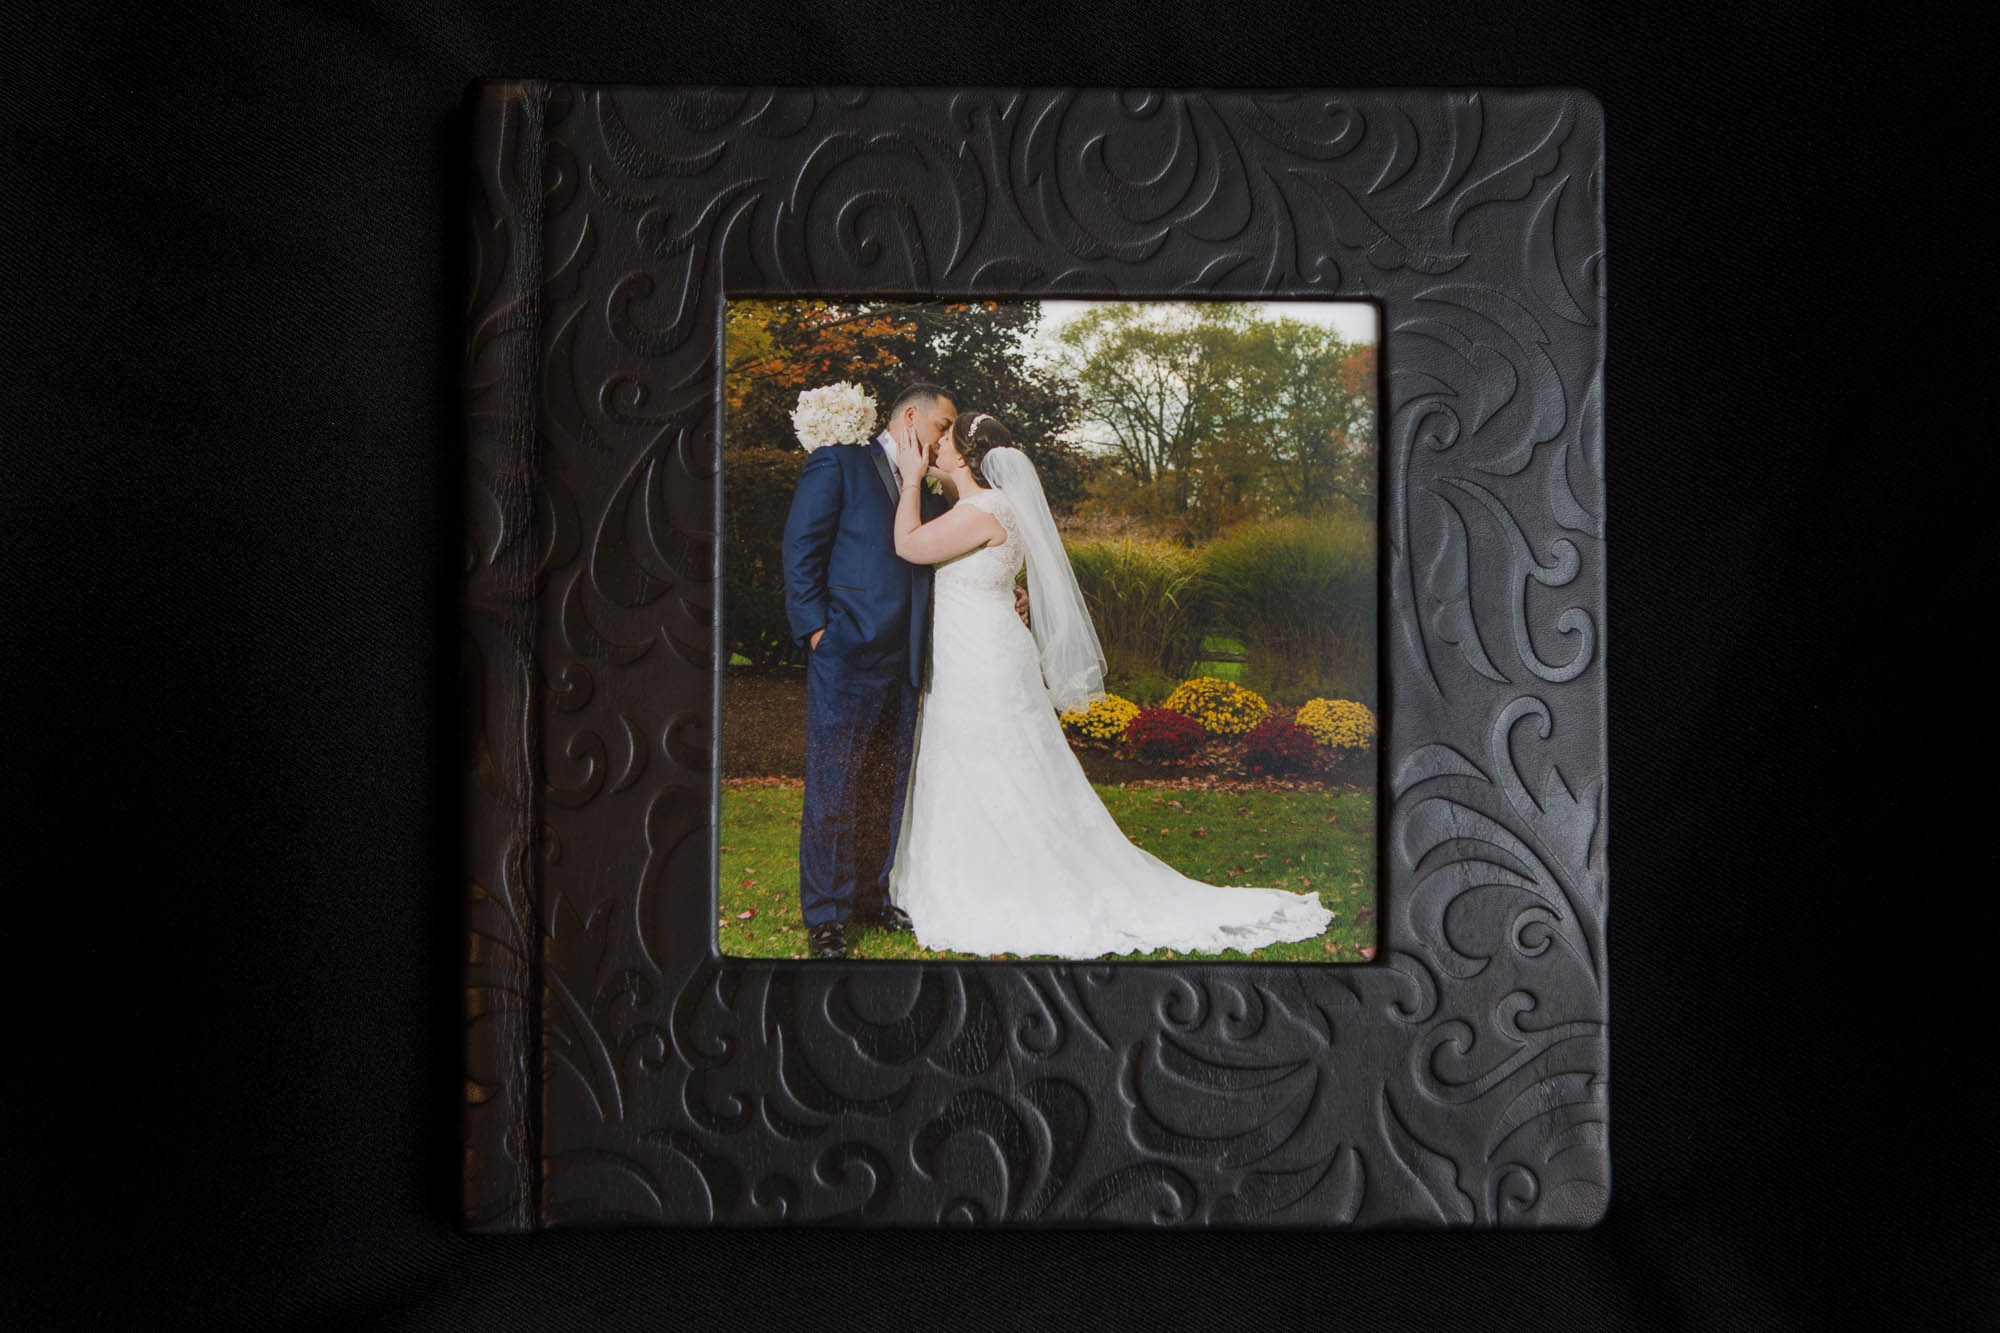 I Have My Wedding Photos On A Disc Now What Why Printing Your Images On Archival Quality Paper Is Important Vail Fucci Photography Boston Wedding Photographer